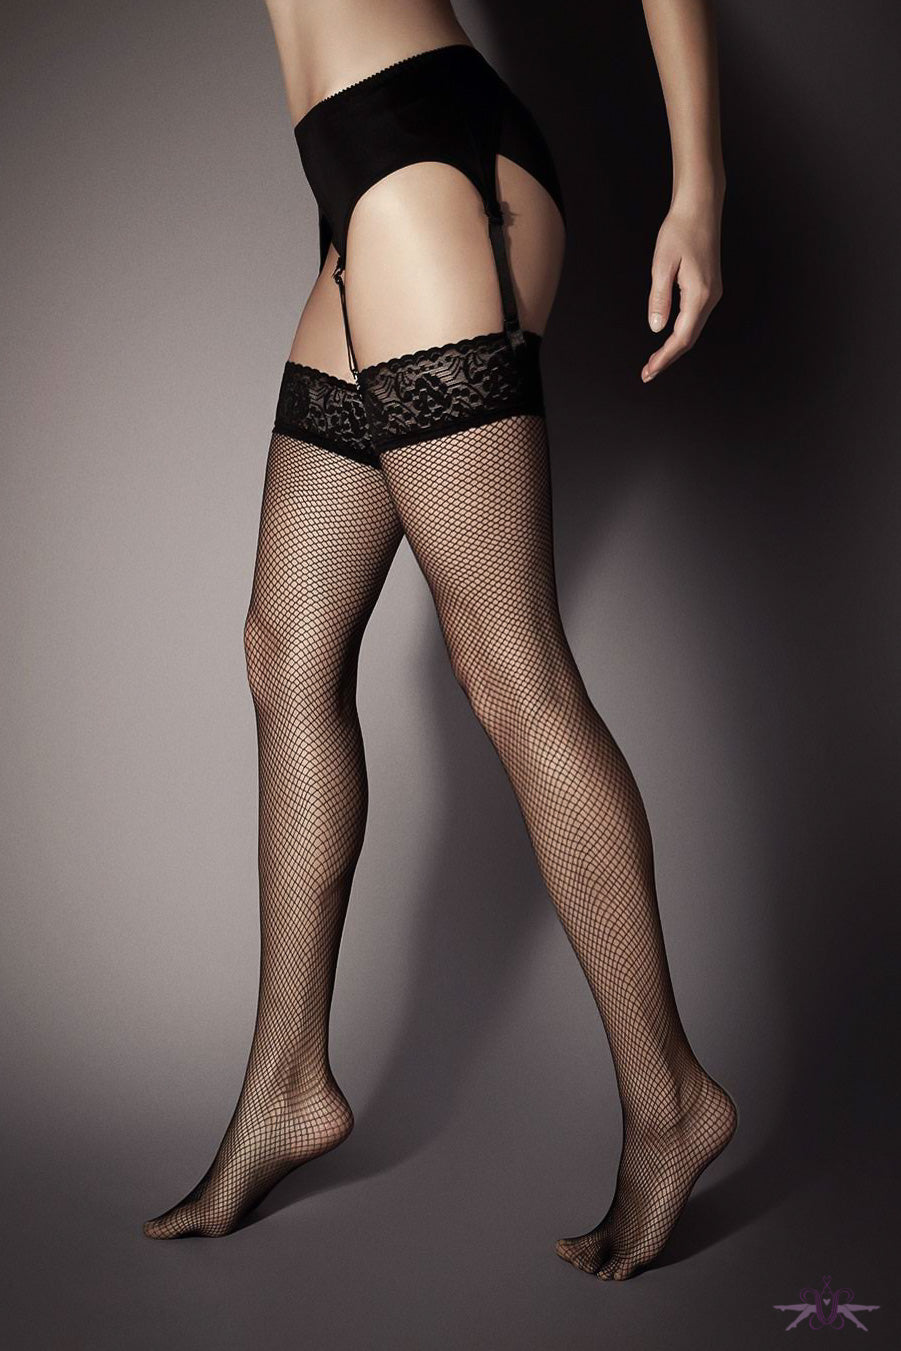 Veneziana Rete Fishnet Stockings - Mayfair Stockings